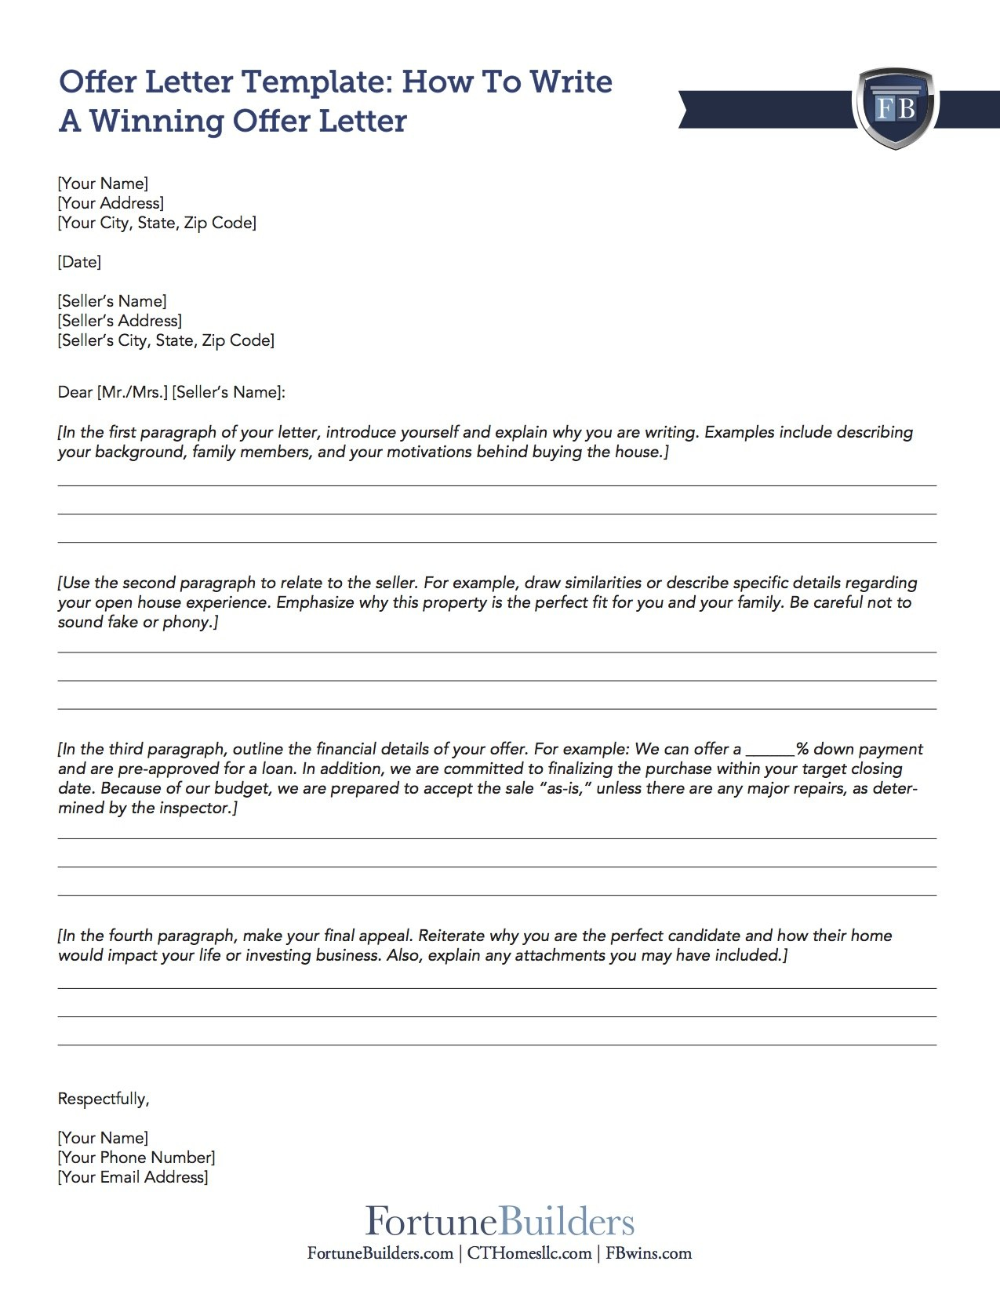 Free Real Estate Offer Letter Template Fortunebuilders